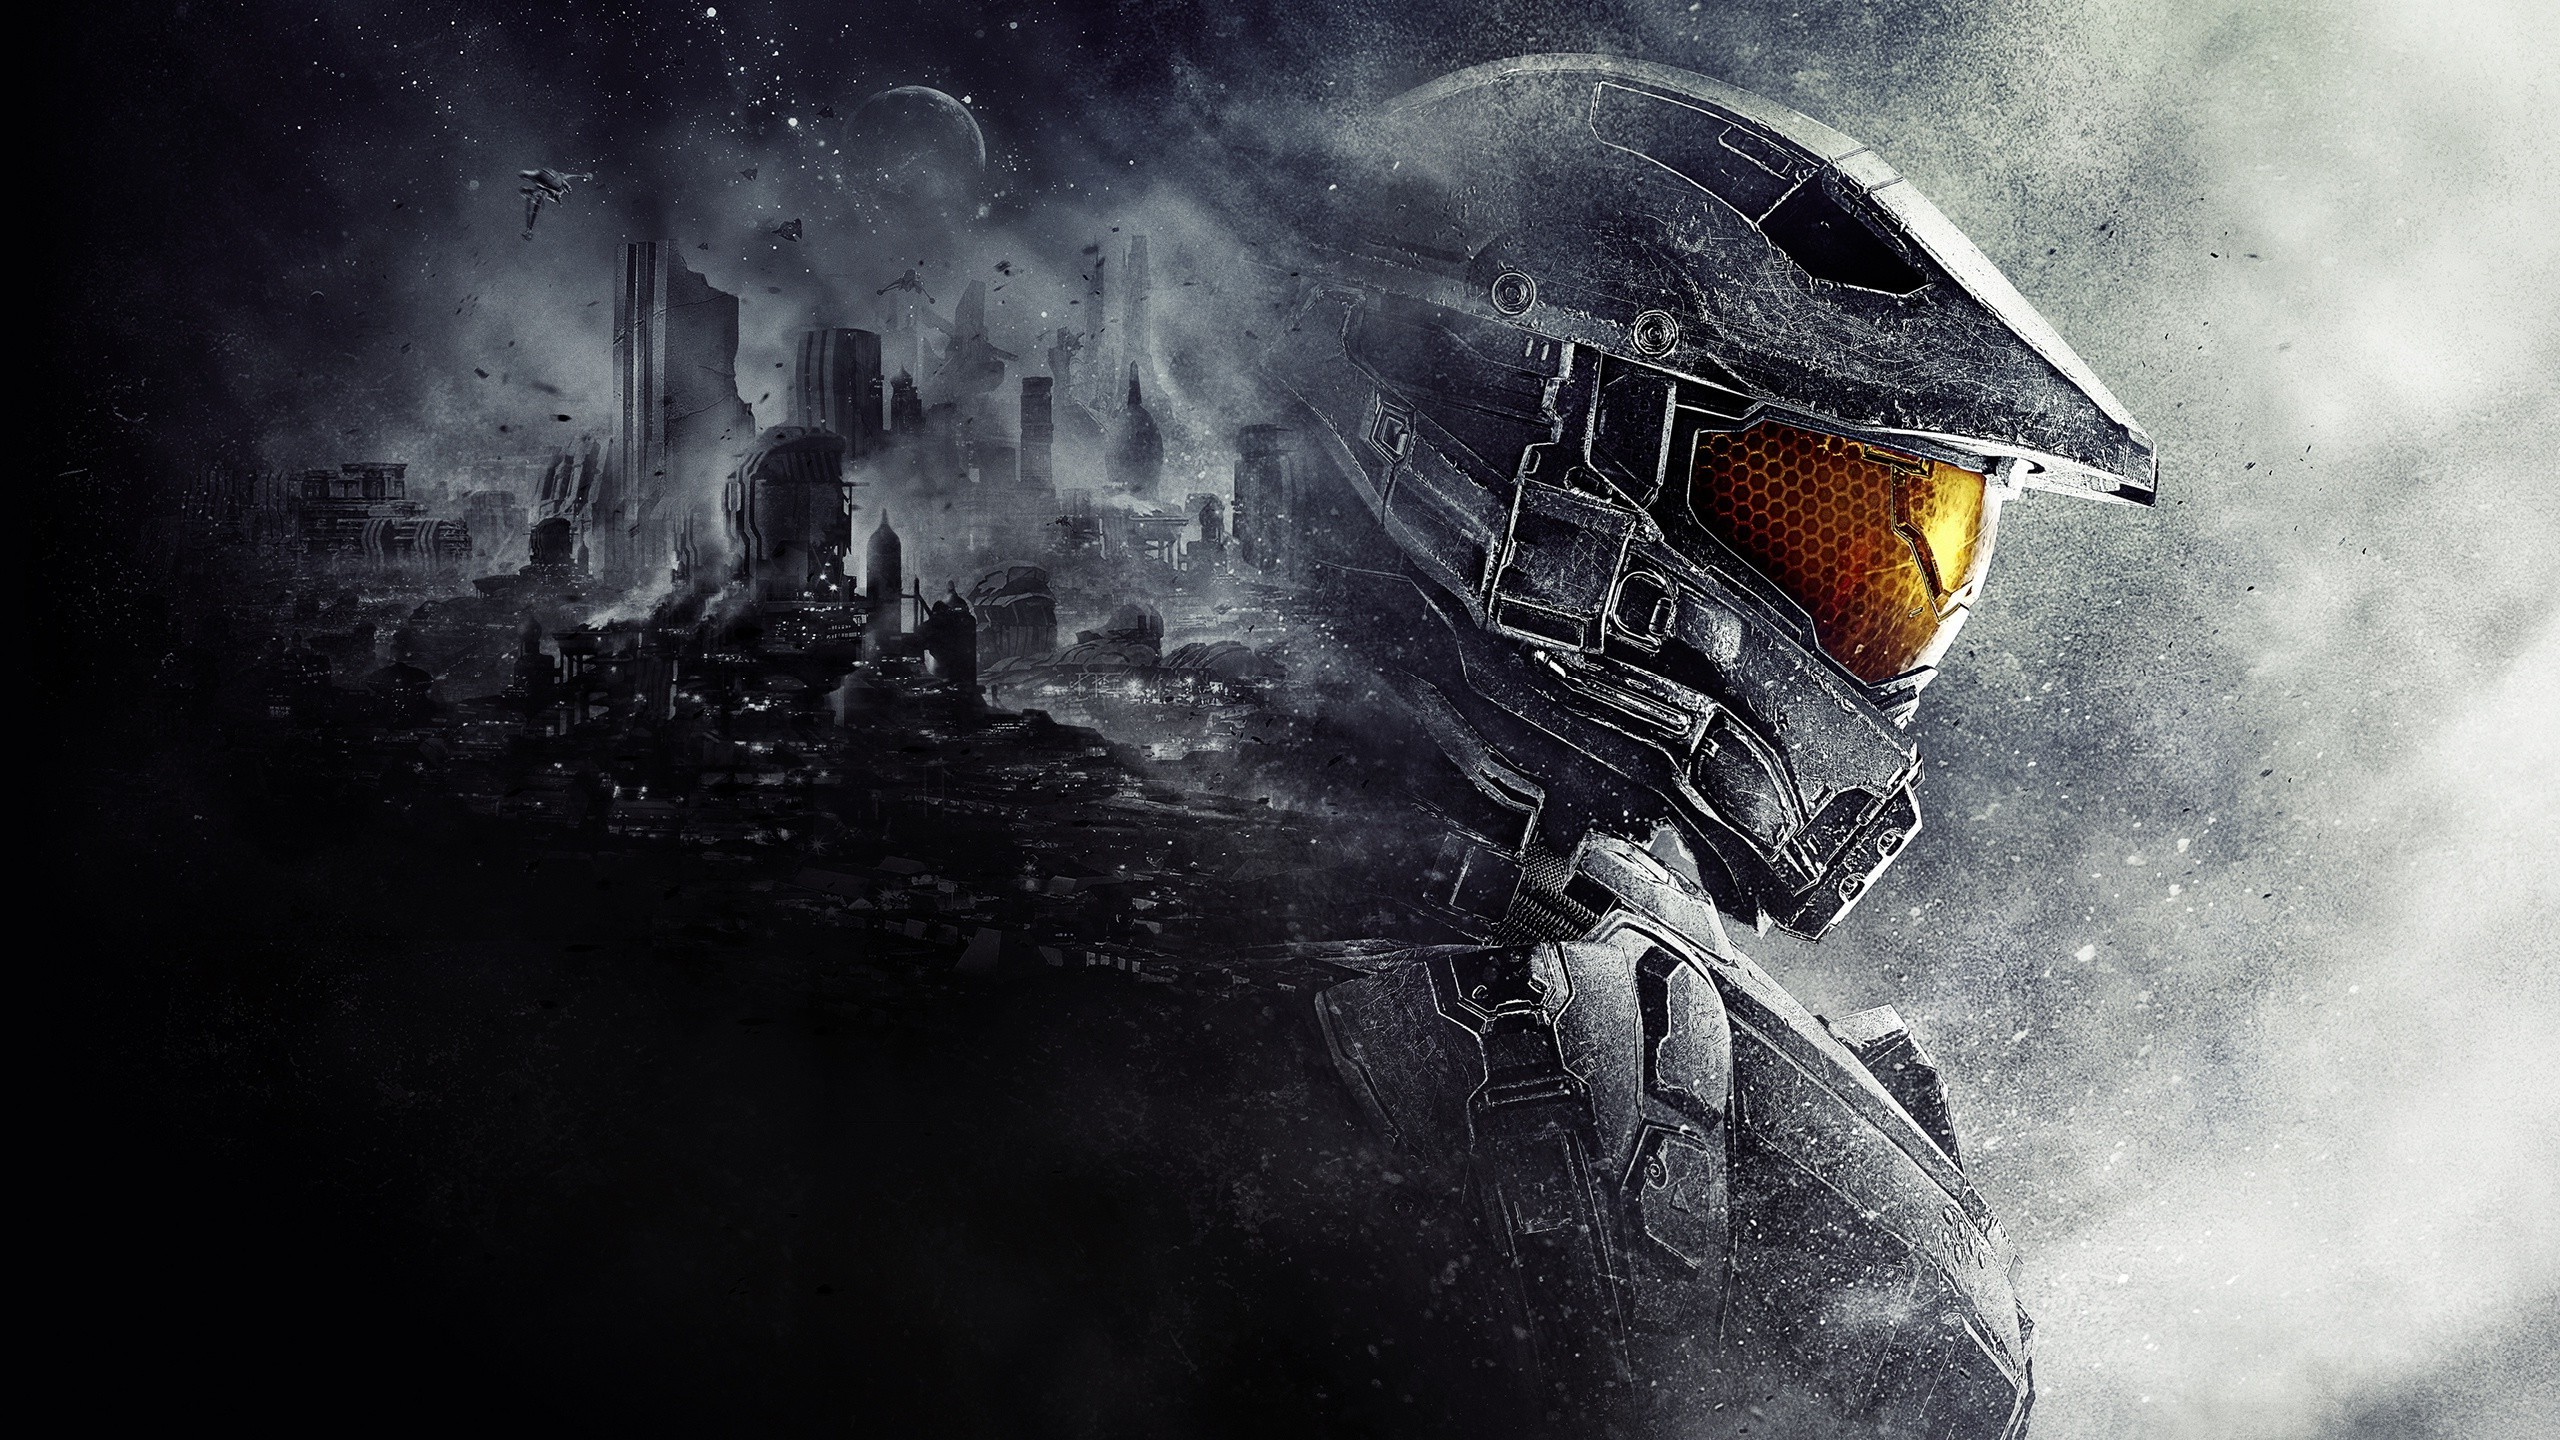 Video games wallpaper download free backgrounds for desktop and mobile devices in any - Games hd wallpapers 1920x1200 ...